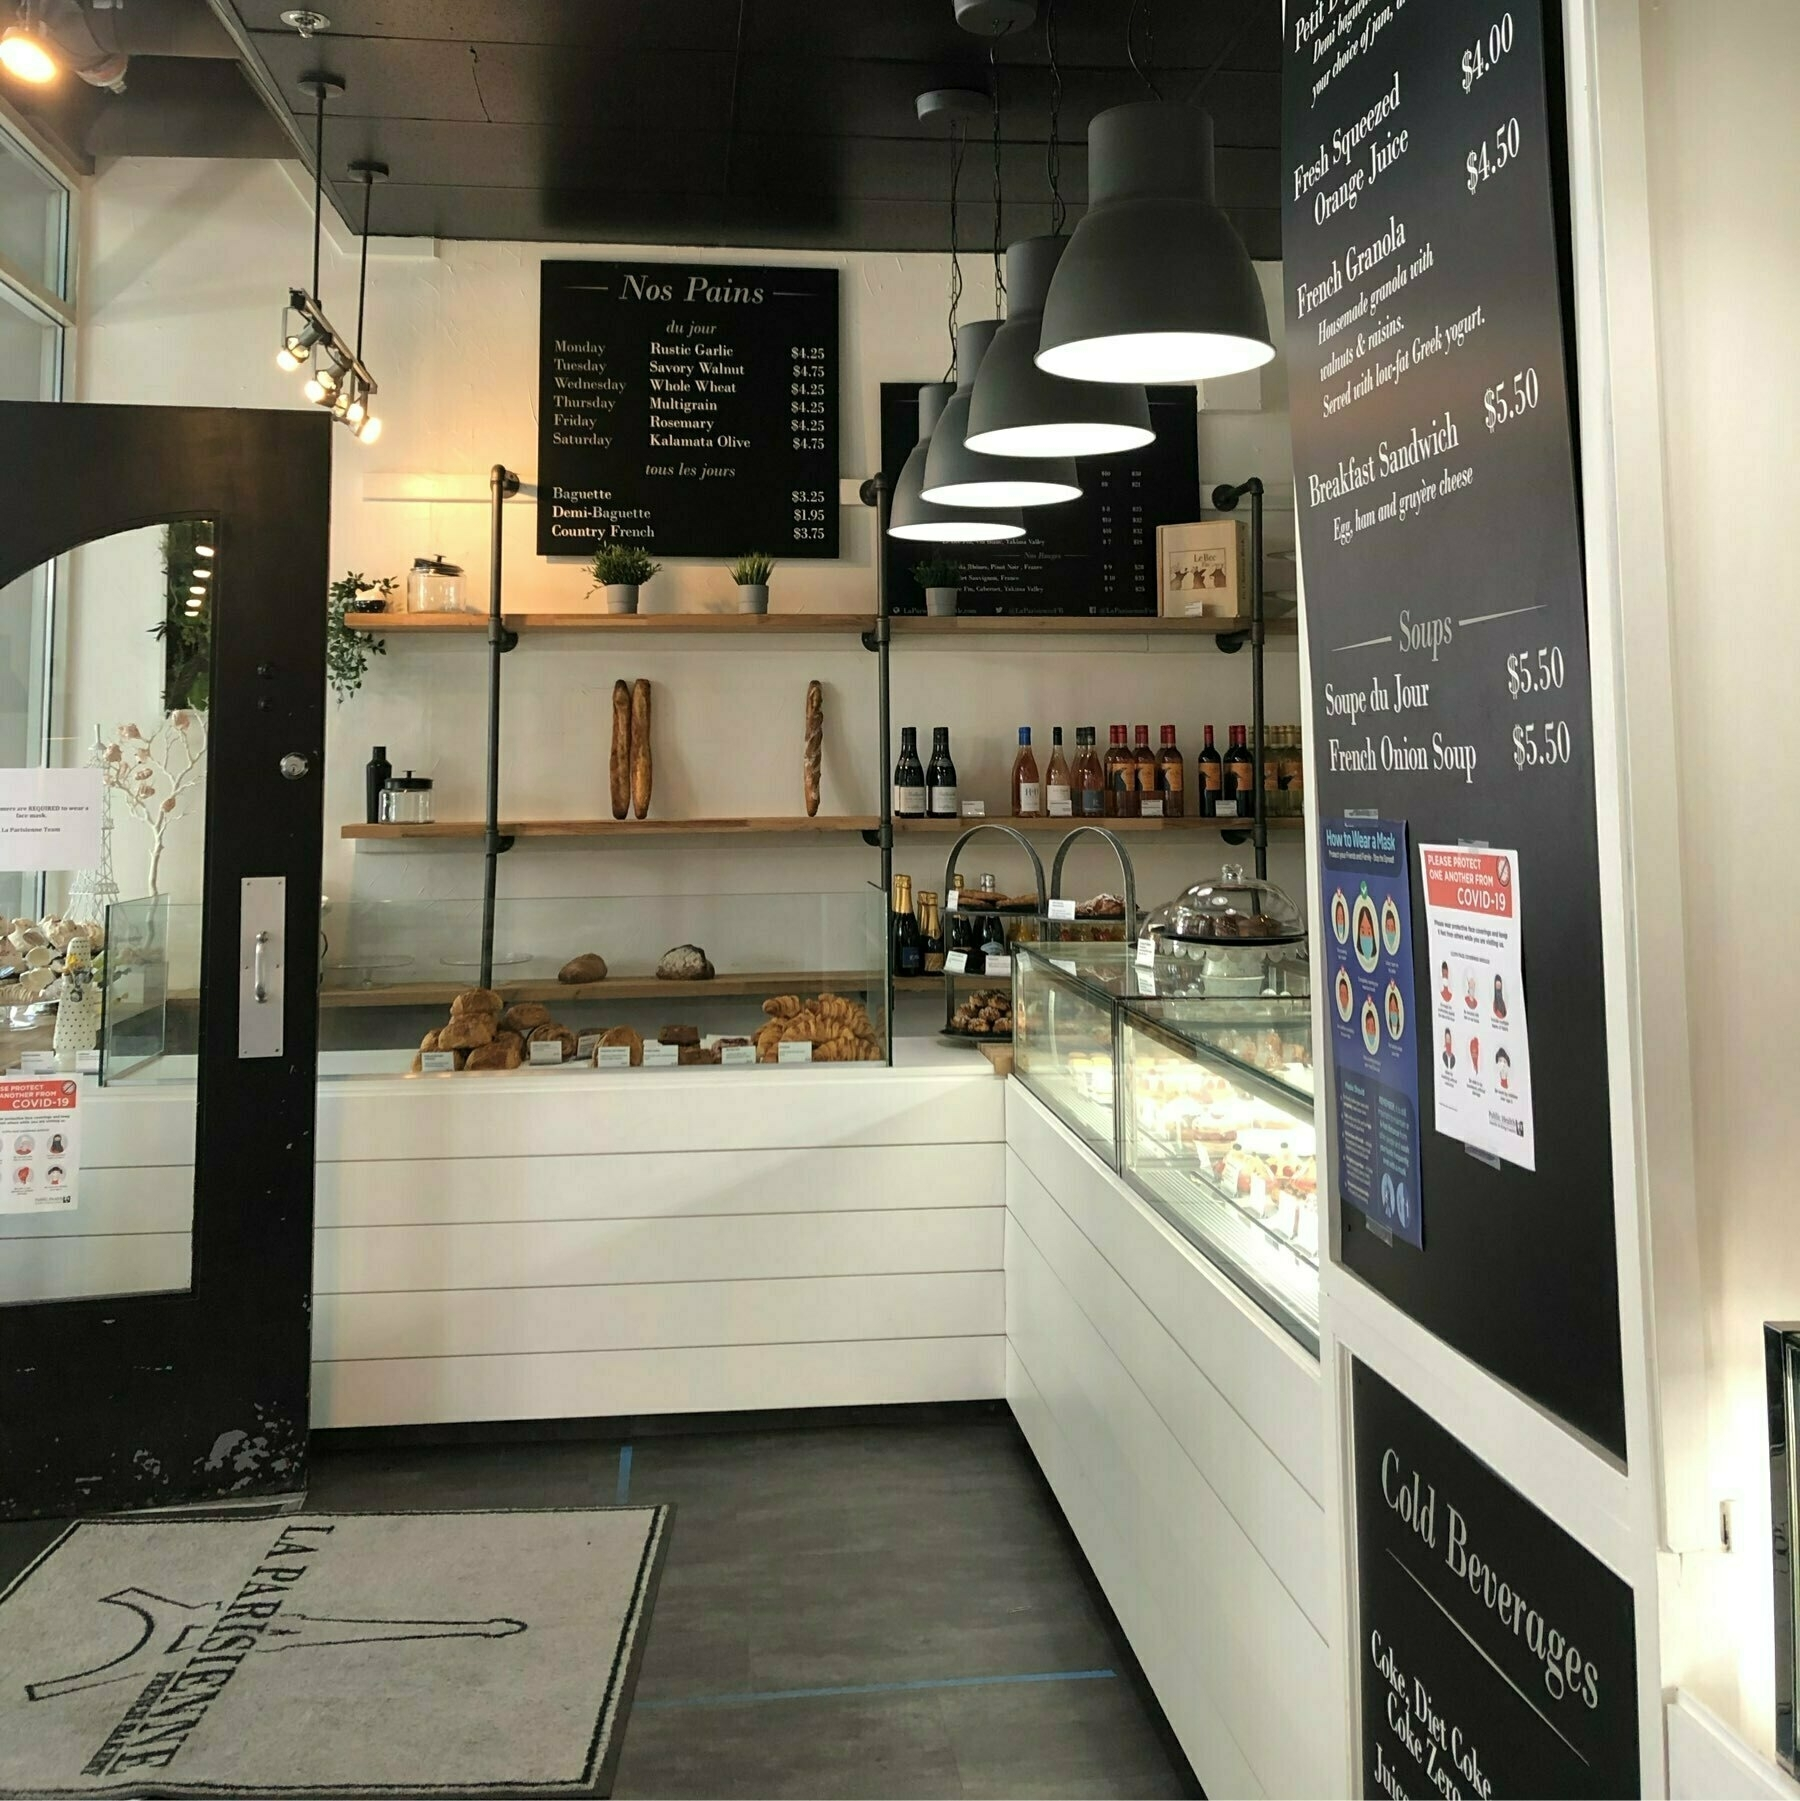 A quaint bakery with glass cases, white walls, and chalkboard signage.